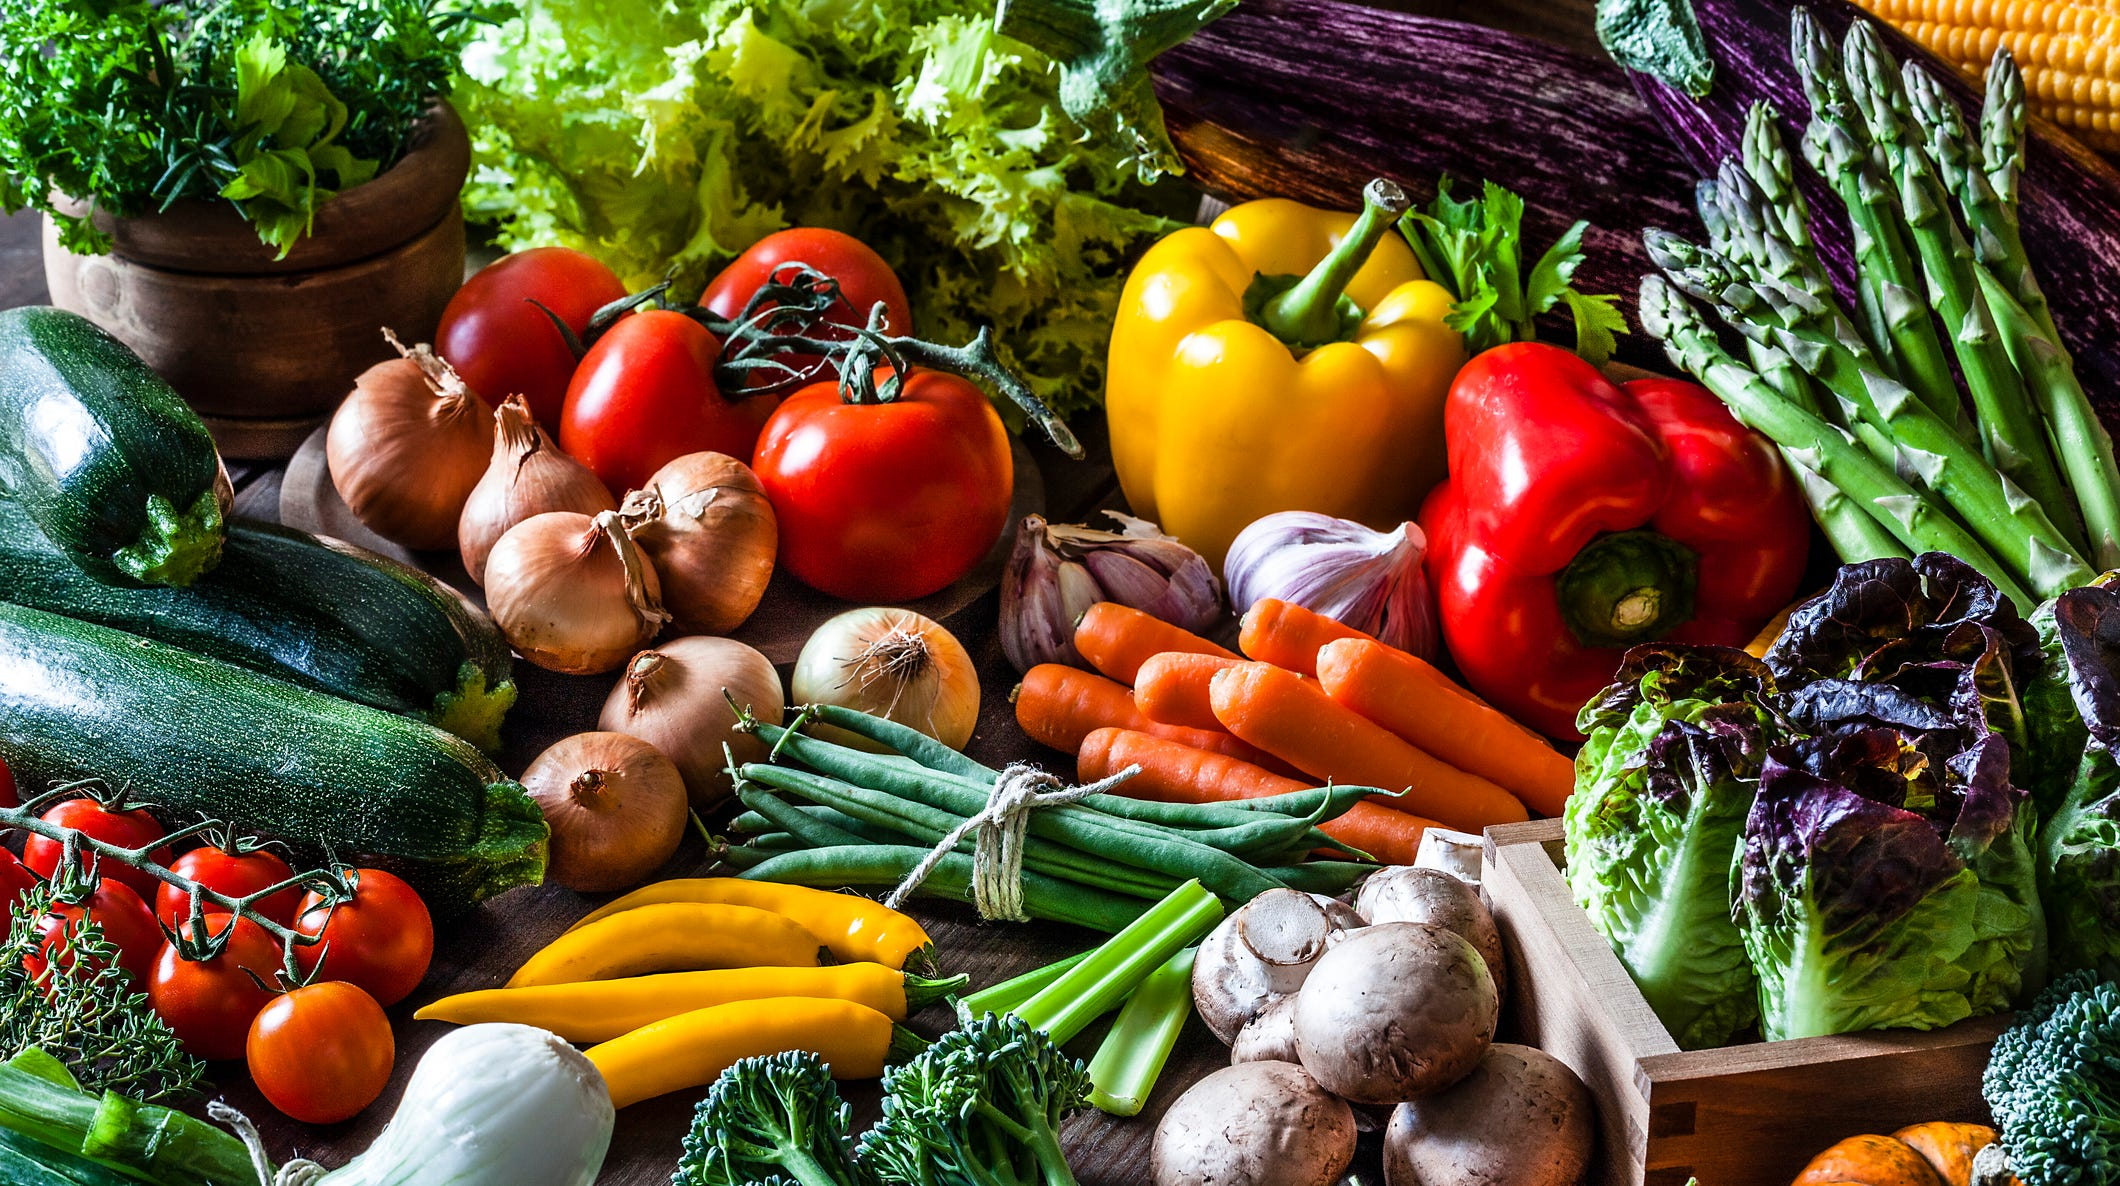 People who frequently eat organic food are less likely to develop cancer, according to a new study observing thousands of French adults.